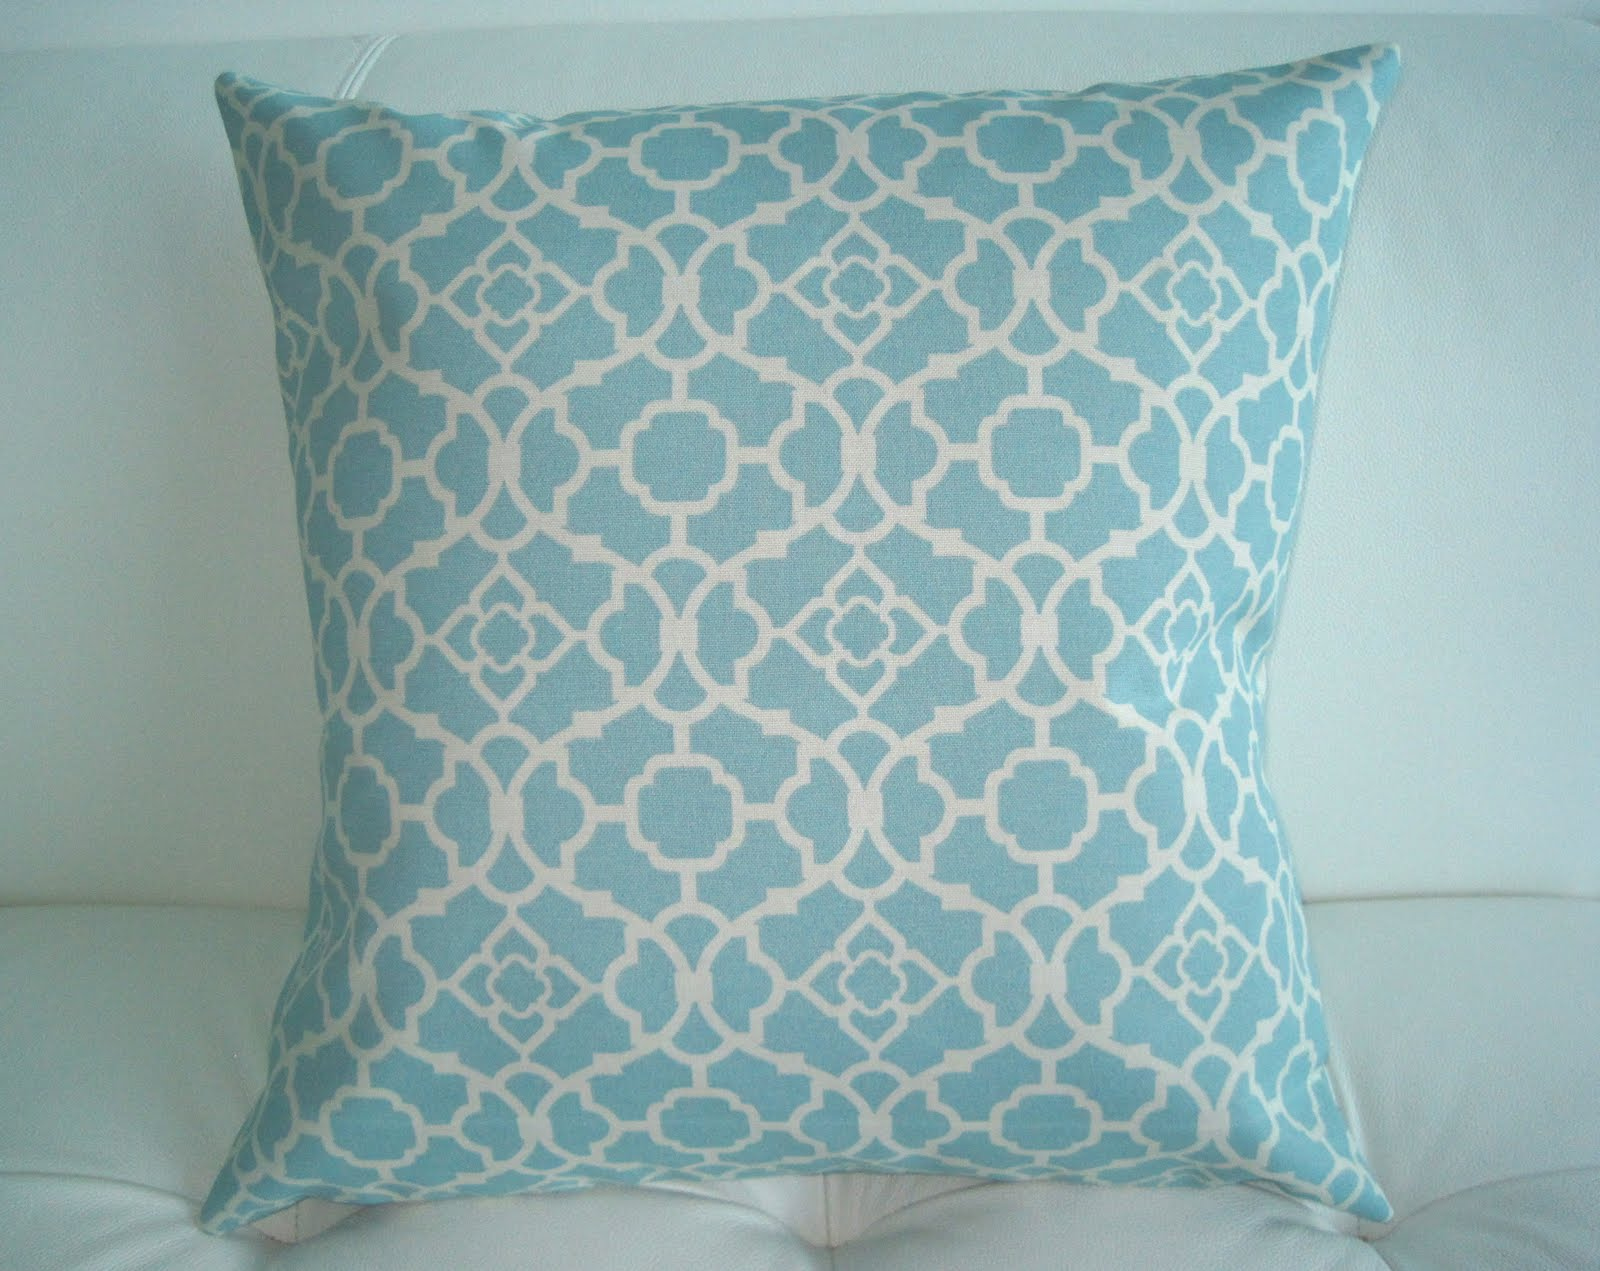 JetSet Coco: New Pillow Designs On Etsy